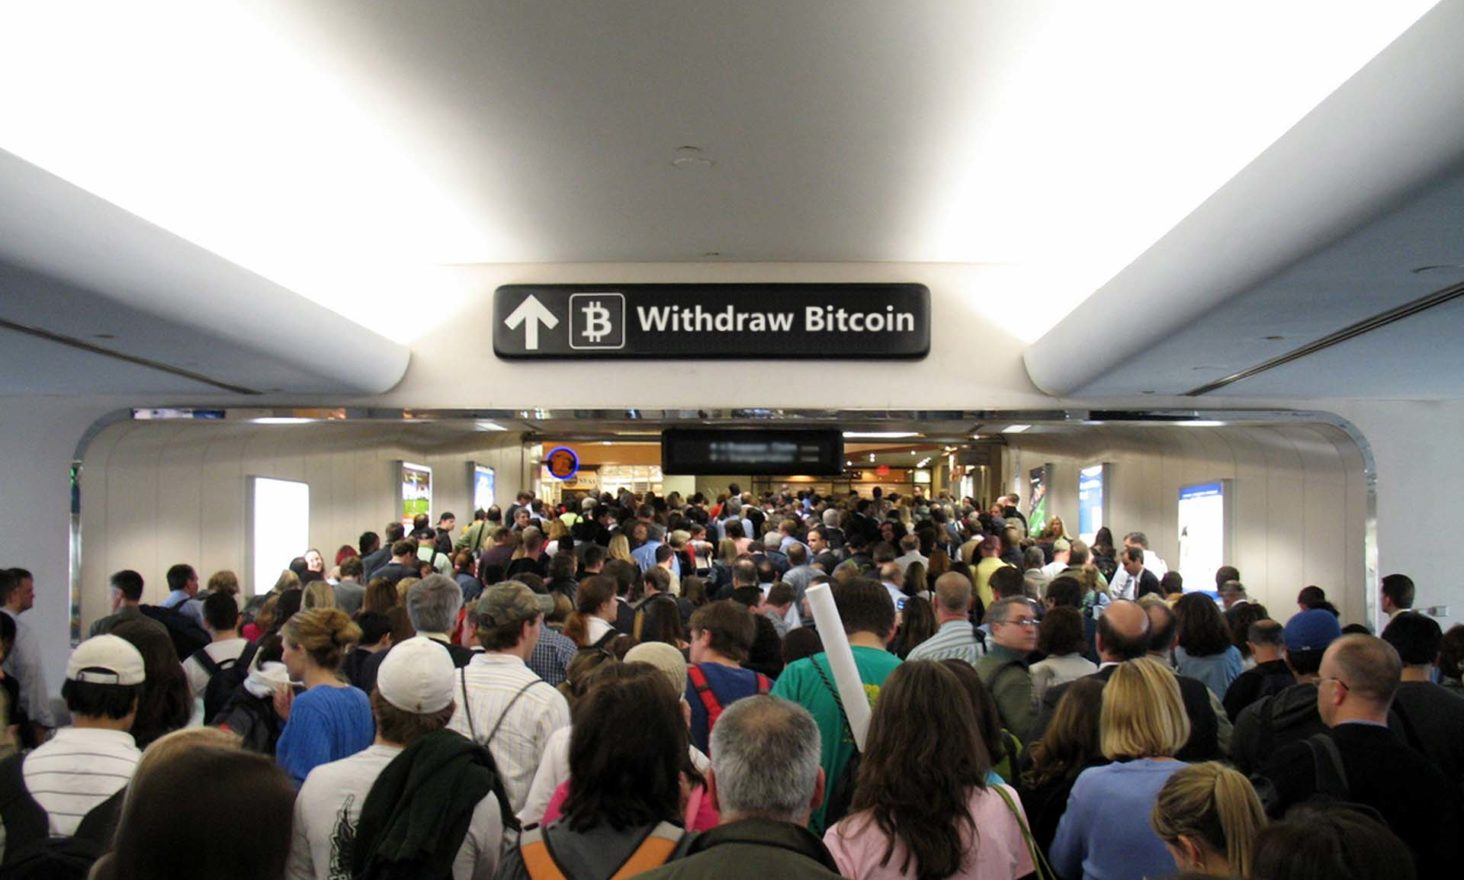 Mass Exodus from Coinbase Spawns 12 Hour Bitcoin Withdrawal Delays